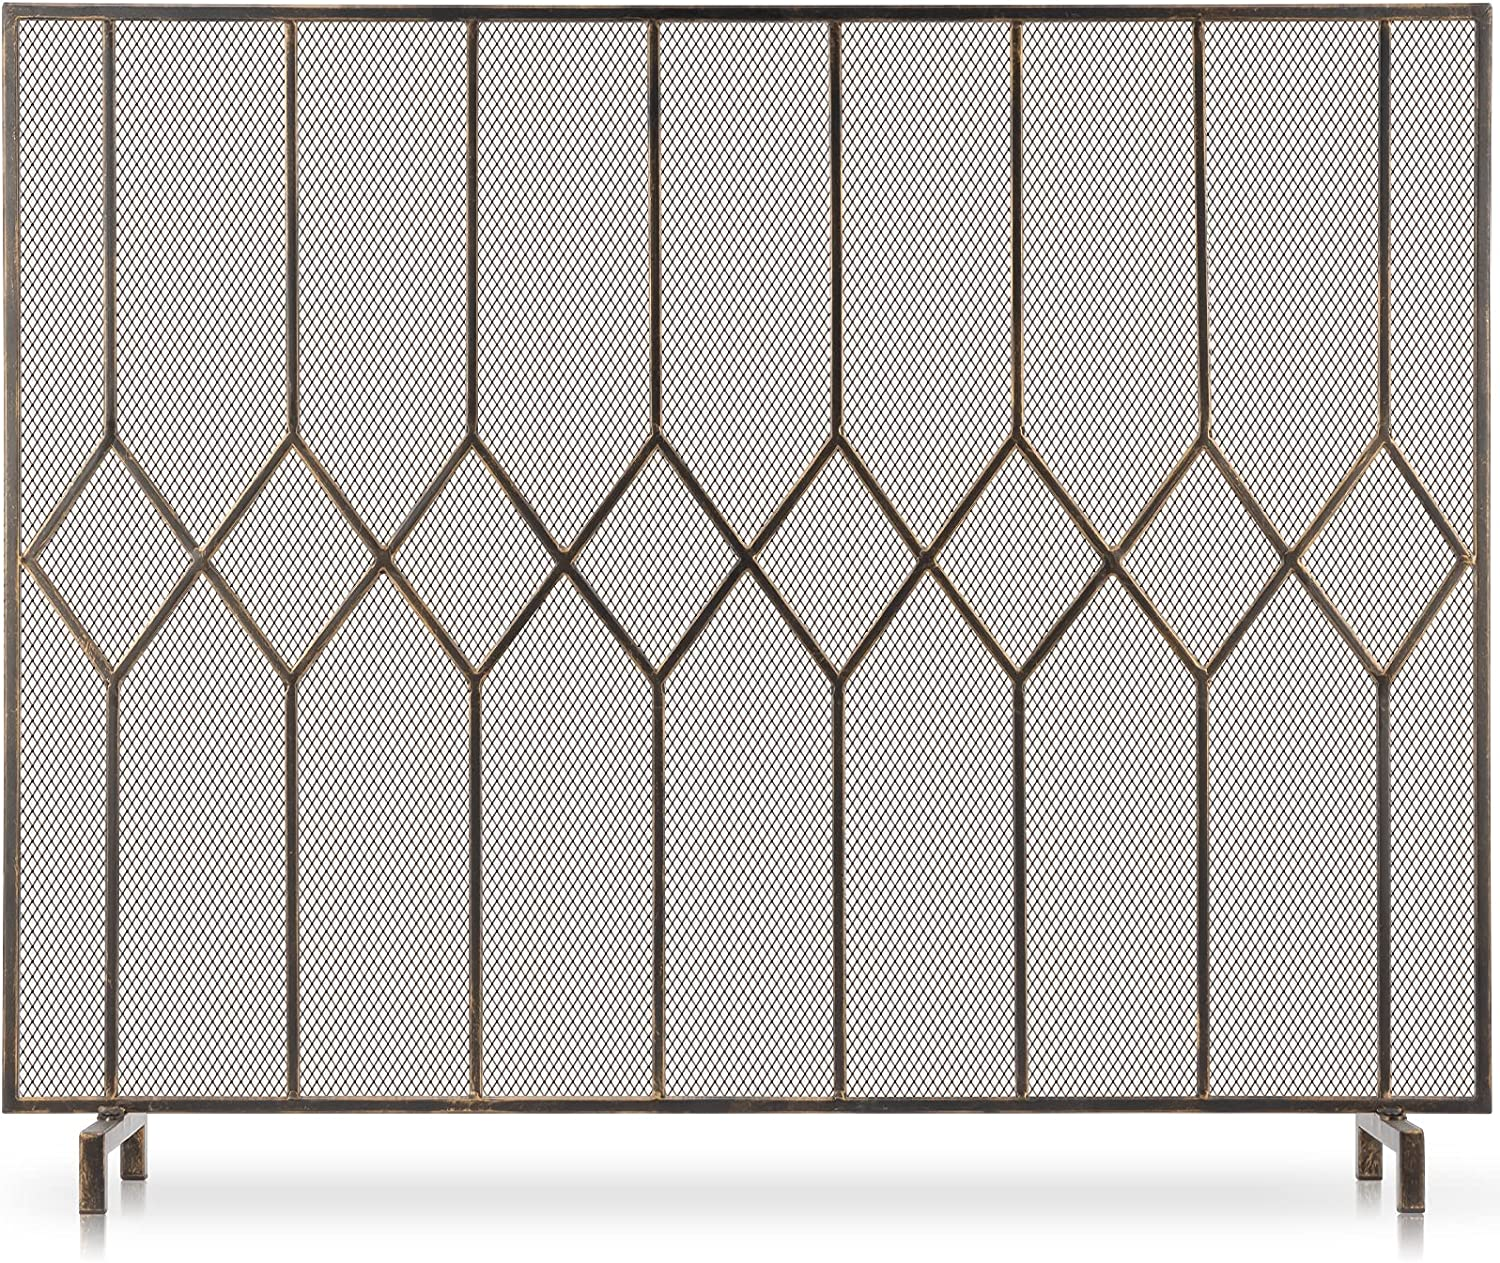 Cheap super special price Amagabeli Fireplace Screens for Burning Single Pa Popular products Wood